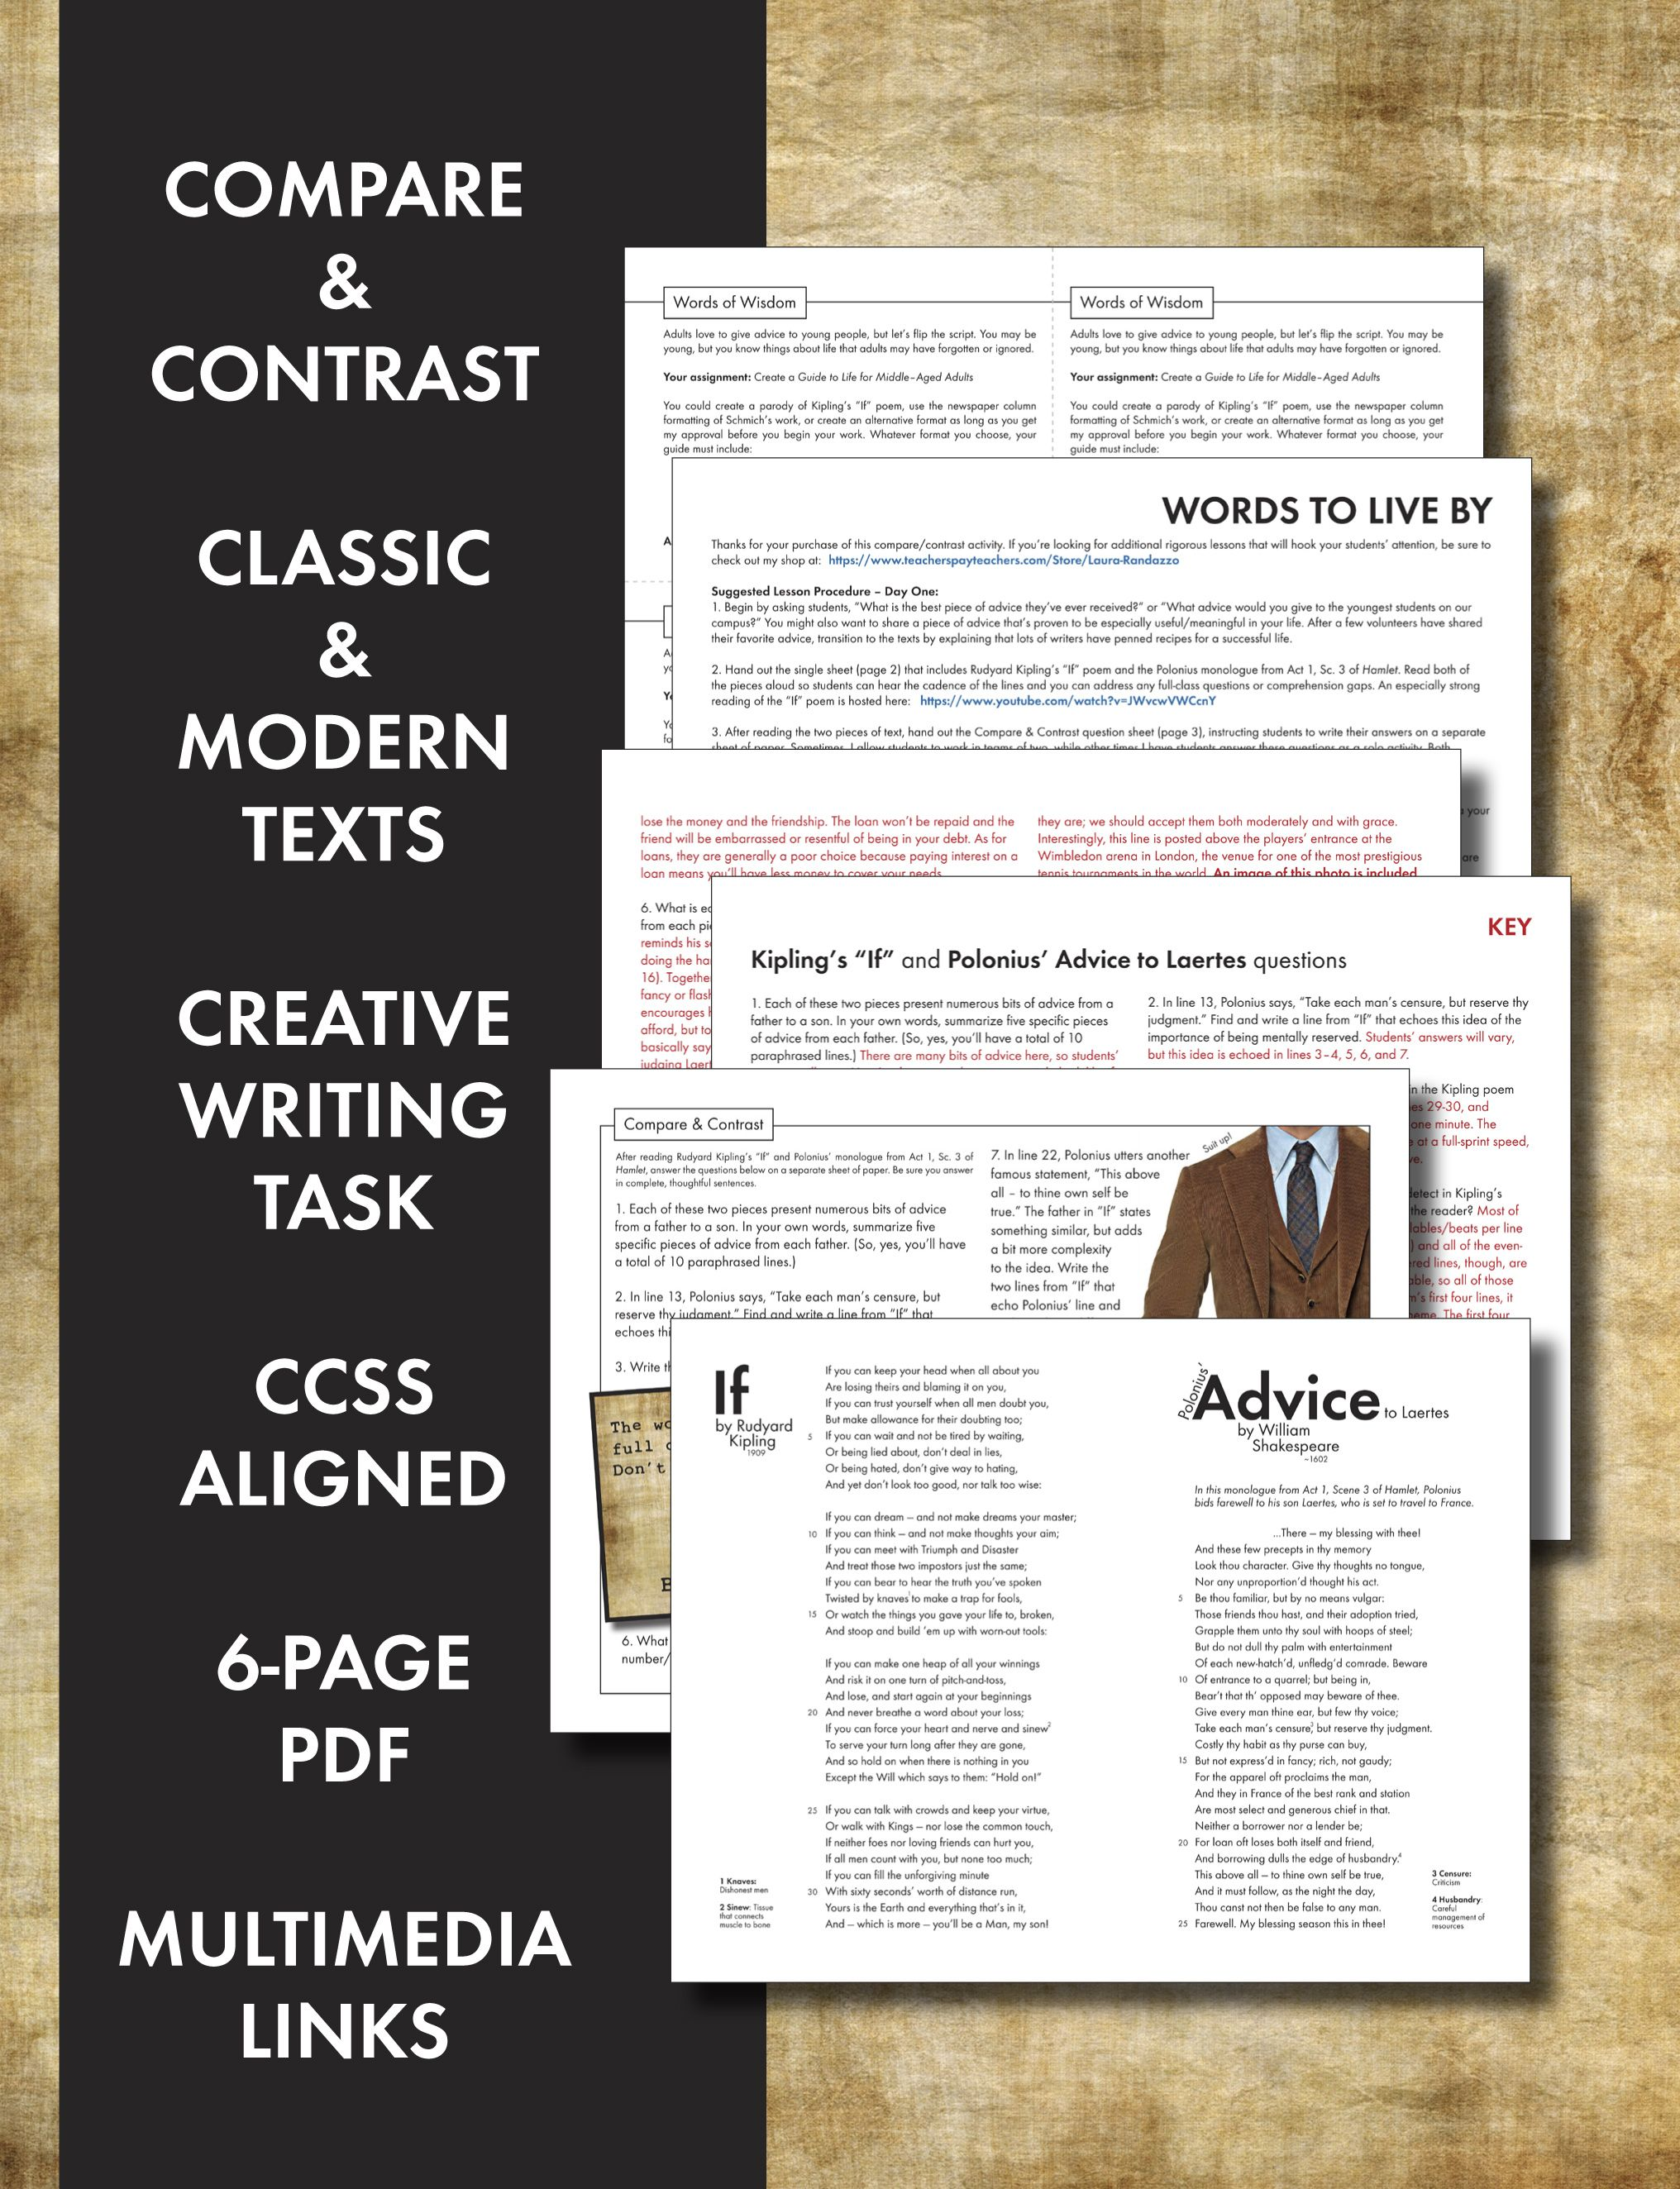 Compare Contrast Texts Poetry Drama Non Fiction In Ccss Lesson Fun Stuff Contrast Words Literary Analysis If Rudyard Kipling